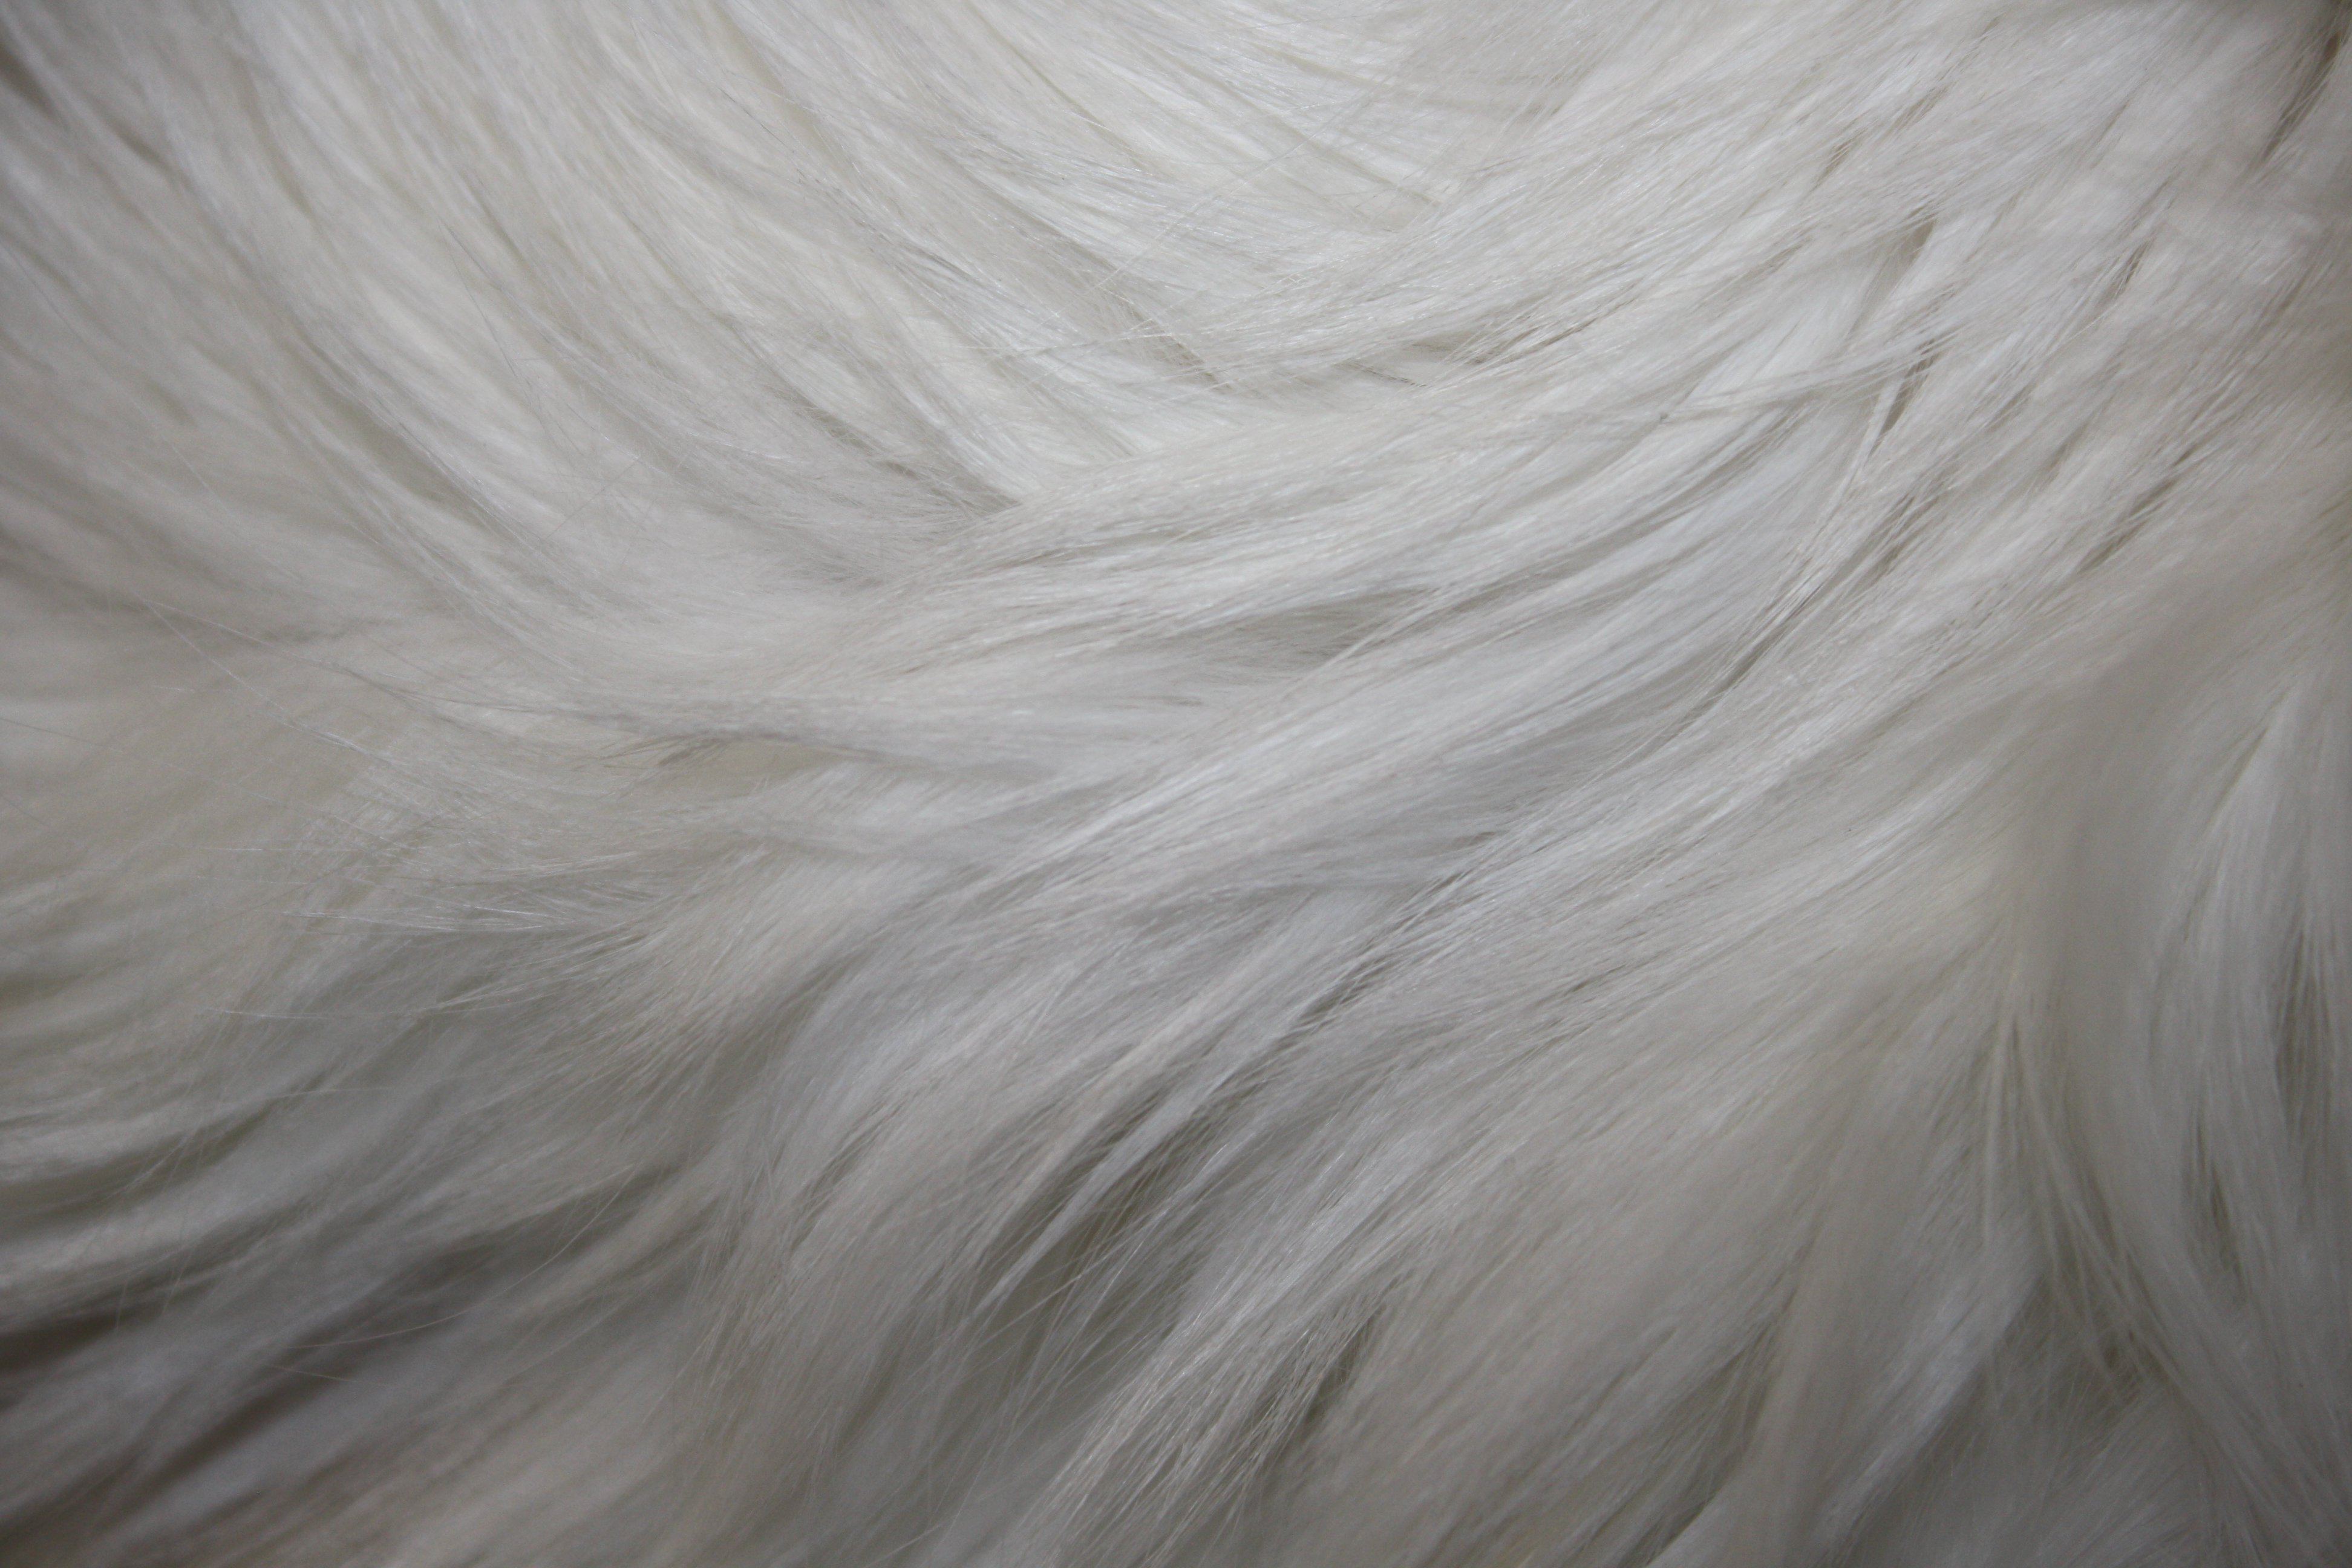 White fur texture picture free photograph photos for Free white texture